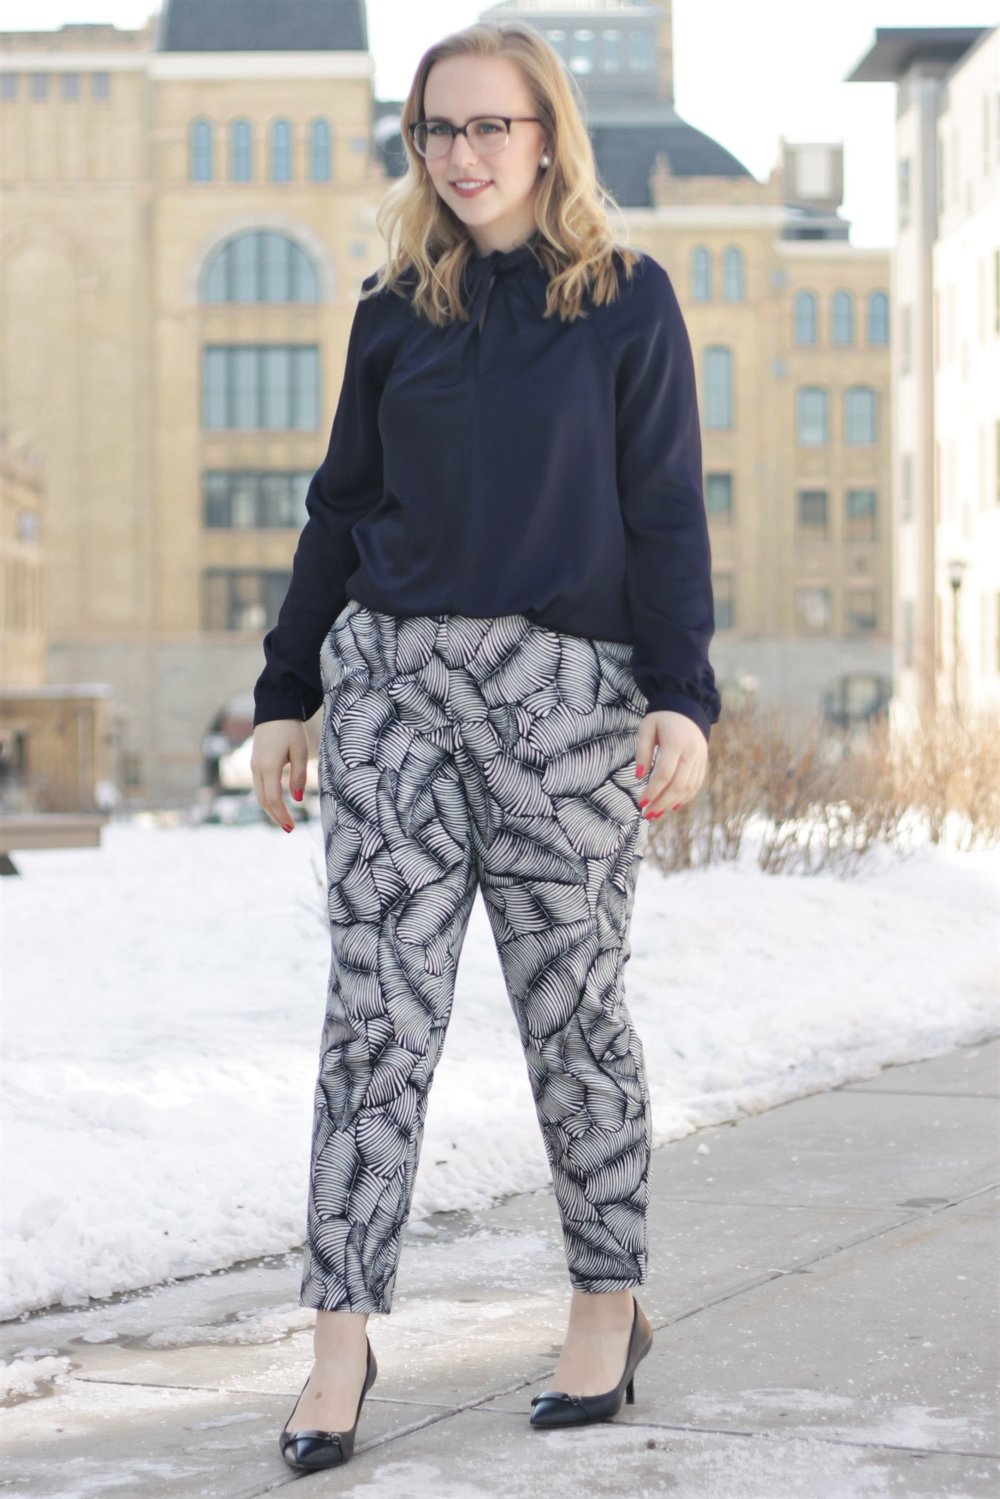 Leaf Pattern Pants & Twisted Top   Work & What She Wore